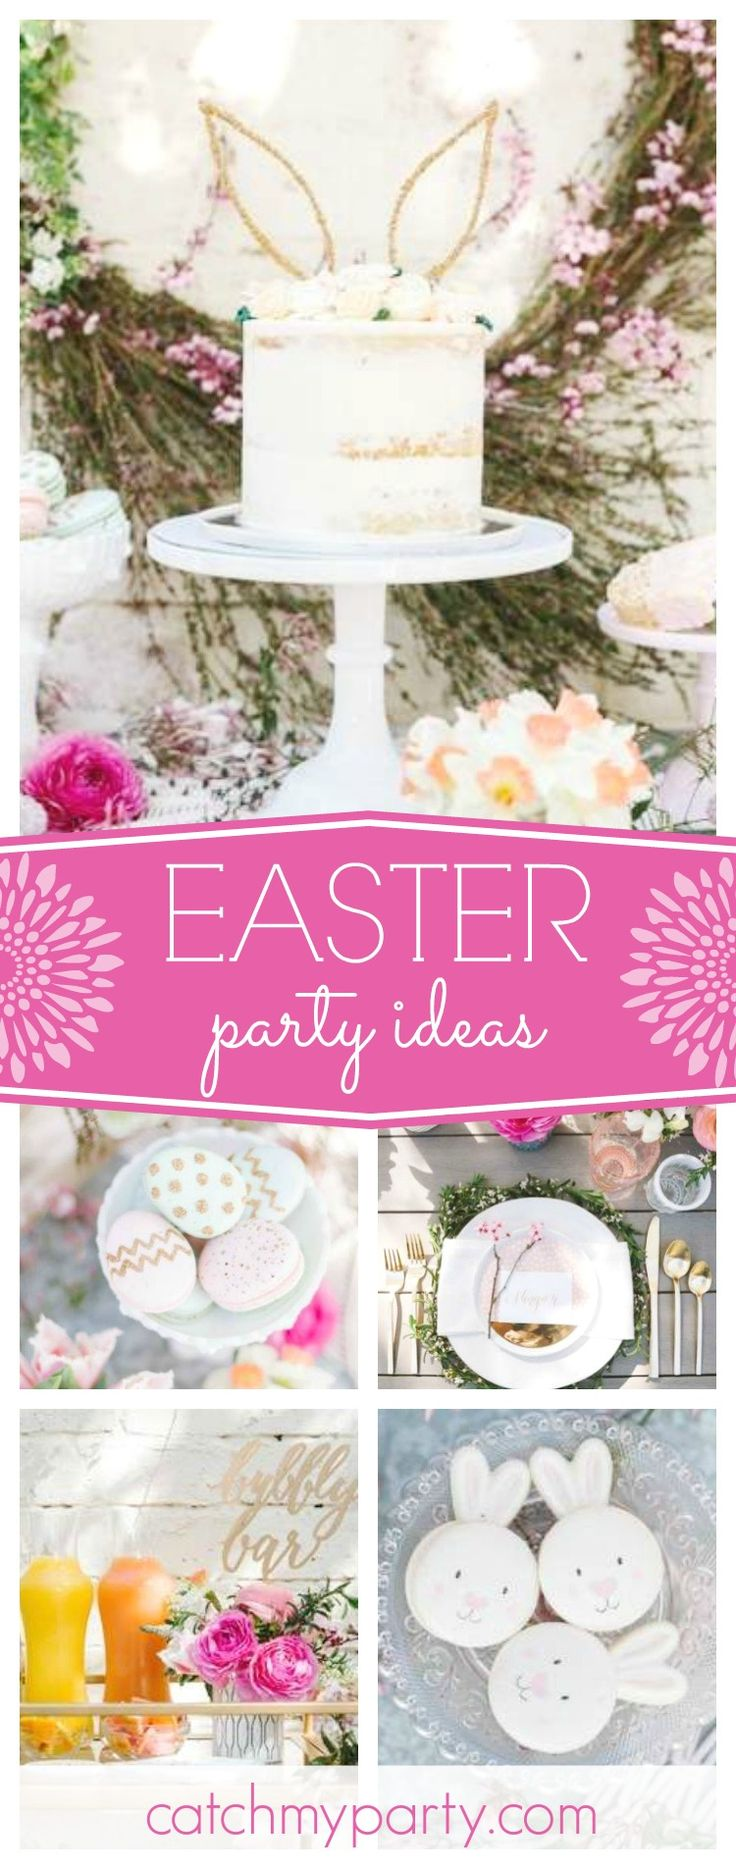 Don't miss this incredible Backyard Easter Brunch! The bunny macaroons are adorable!! See more party ideas and share yours at CatchMyParty.com